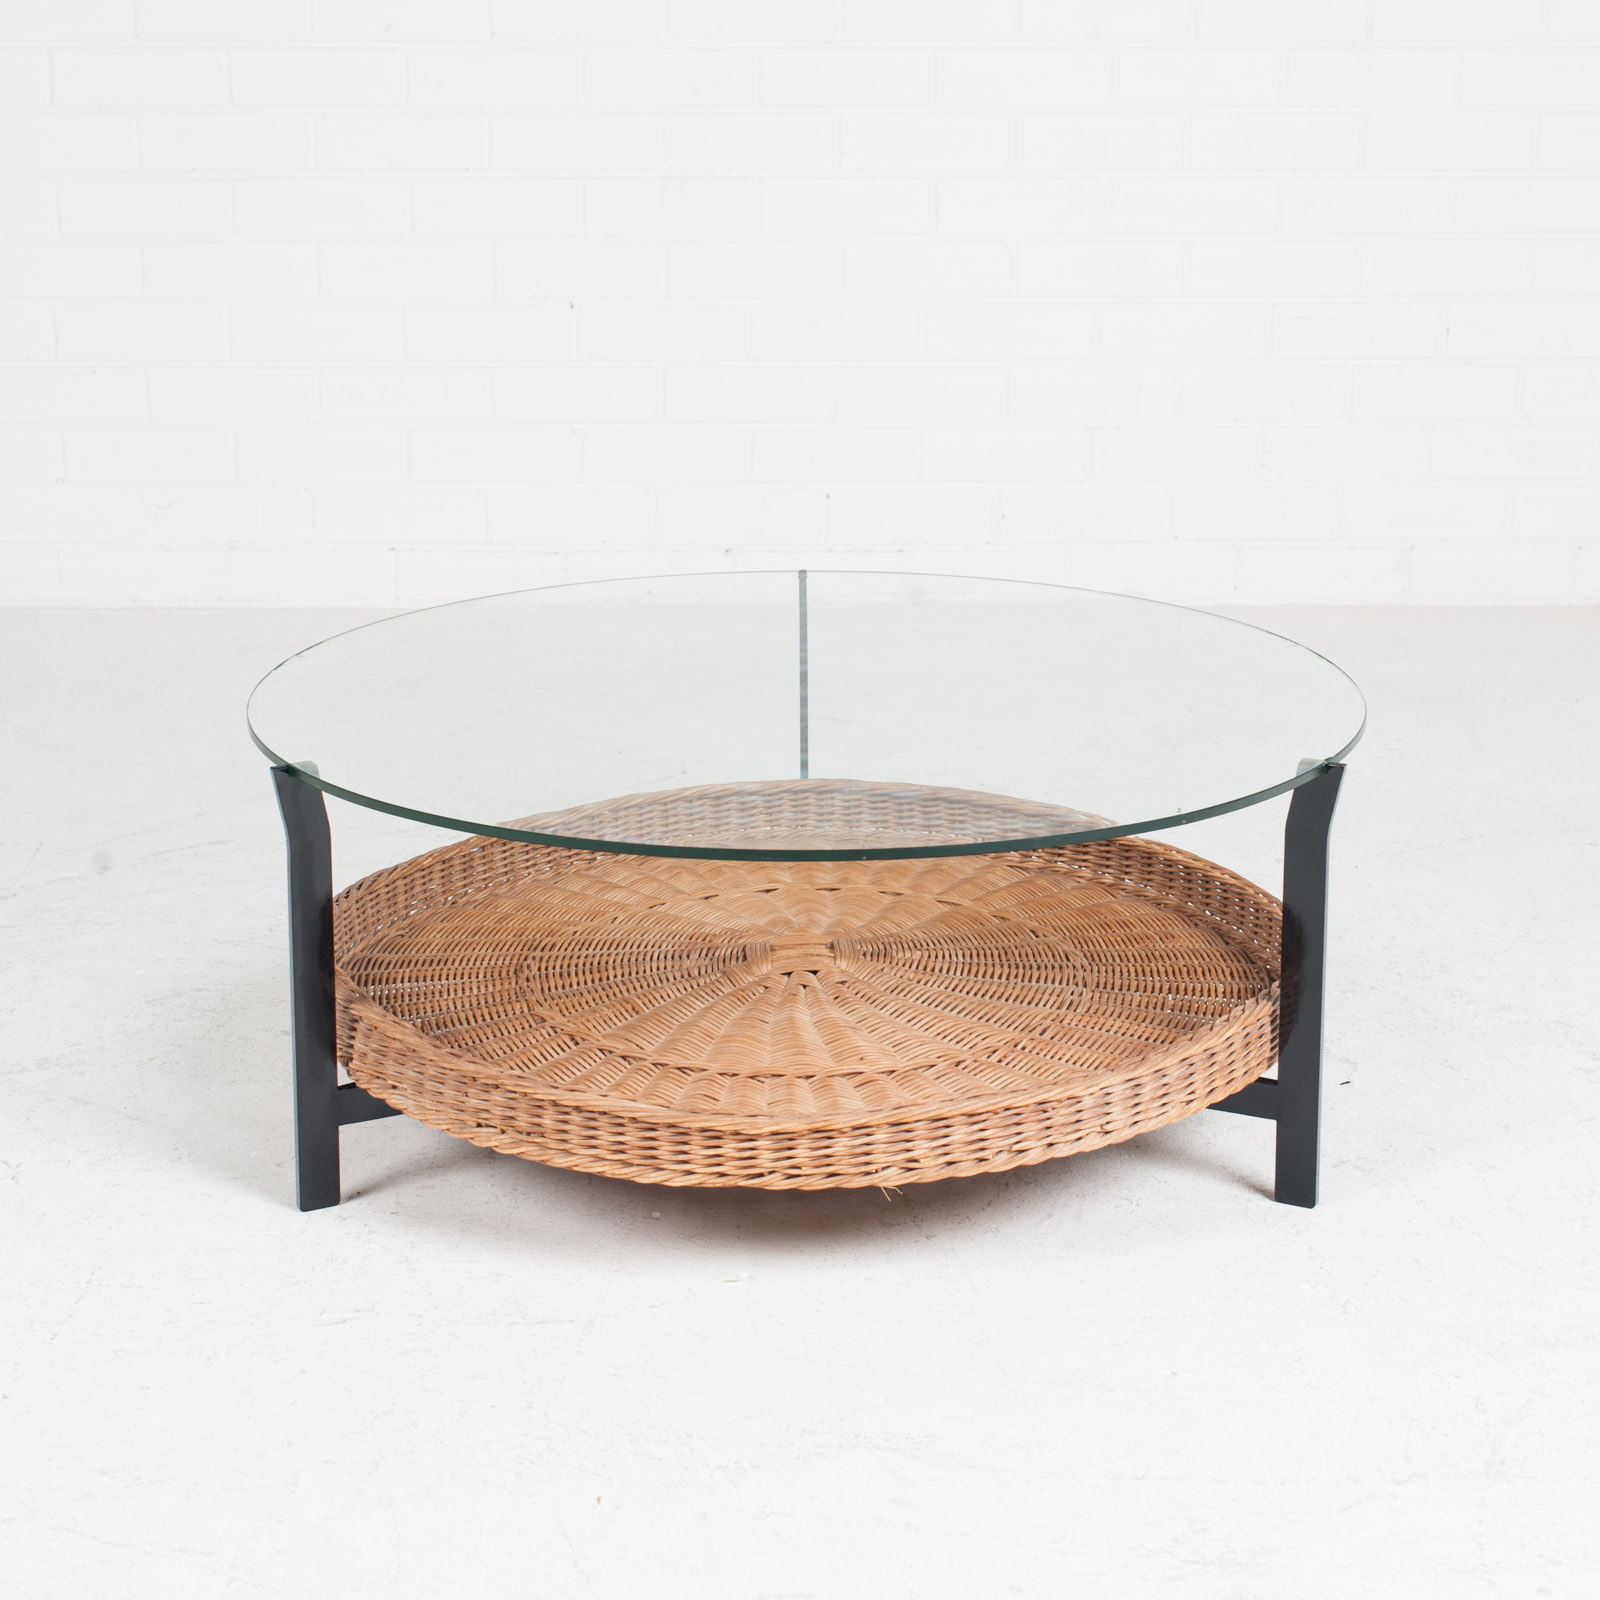 Round Coffee Table With Rattan Base 1960s Denmark 02